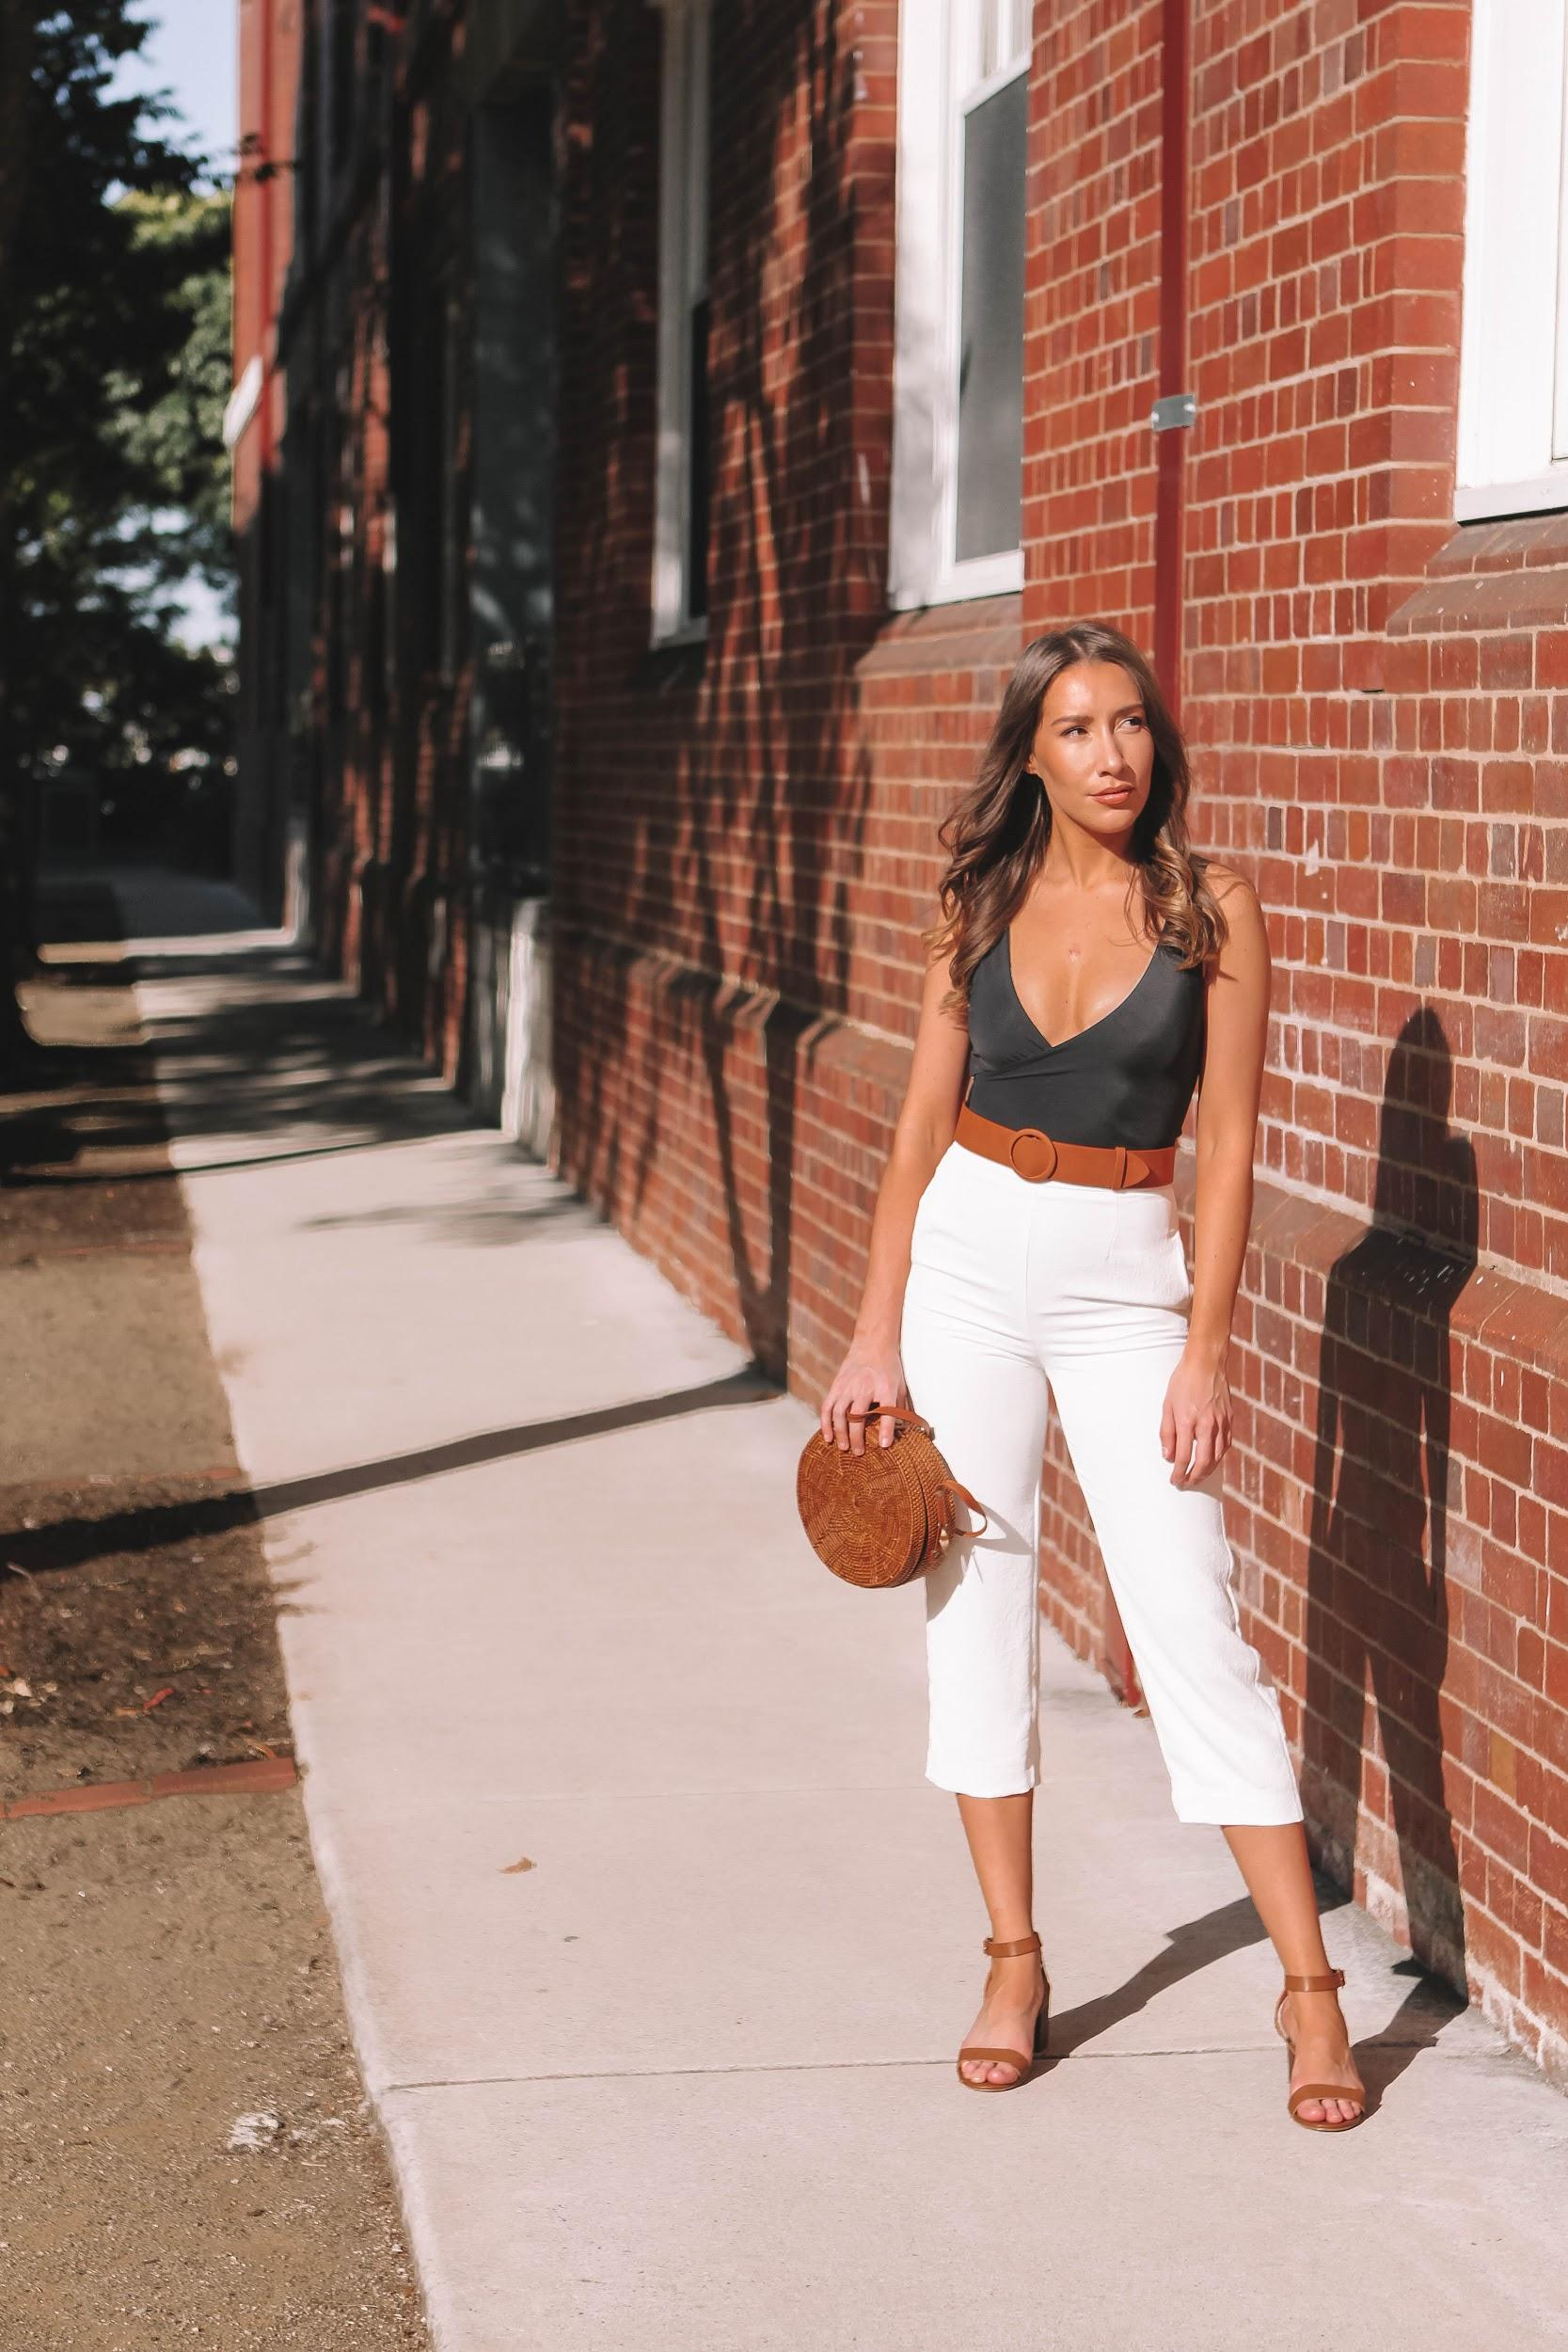 Black, white, and brown outfit | A Week Of Consciously Curated Outfits With Amber Boyers, Founder Of BAIIA And The Conscious Cut on The Good Trade